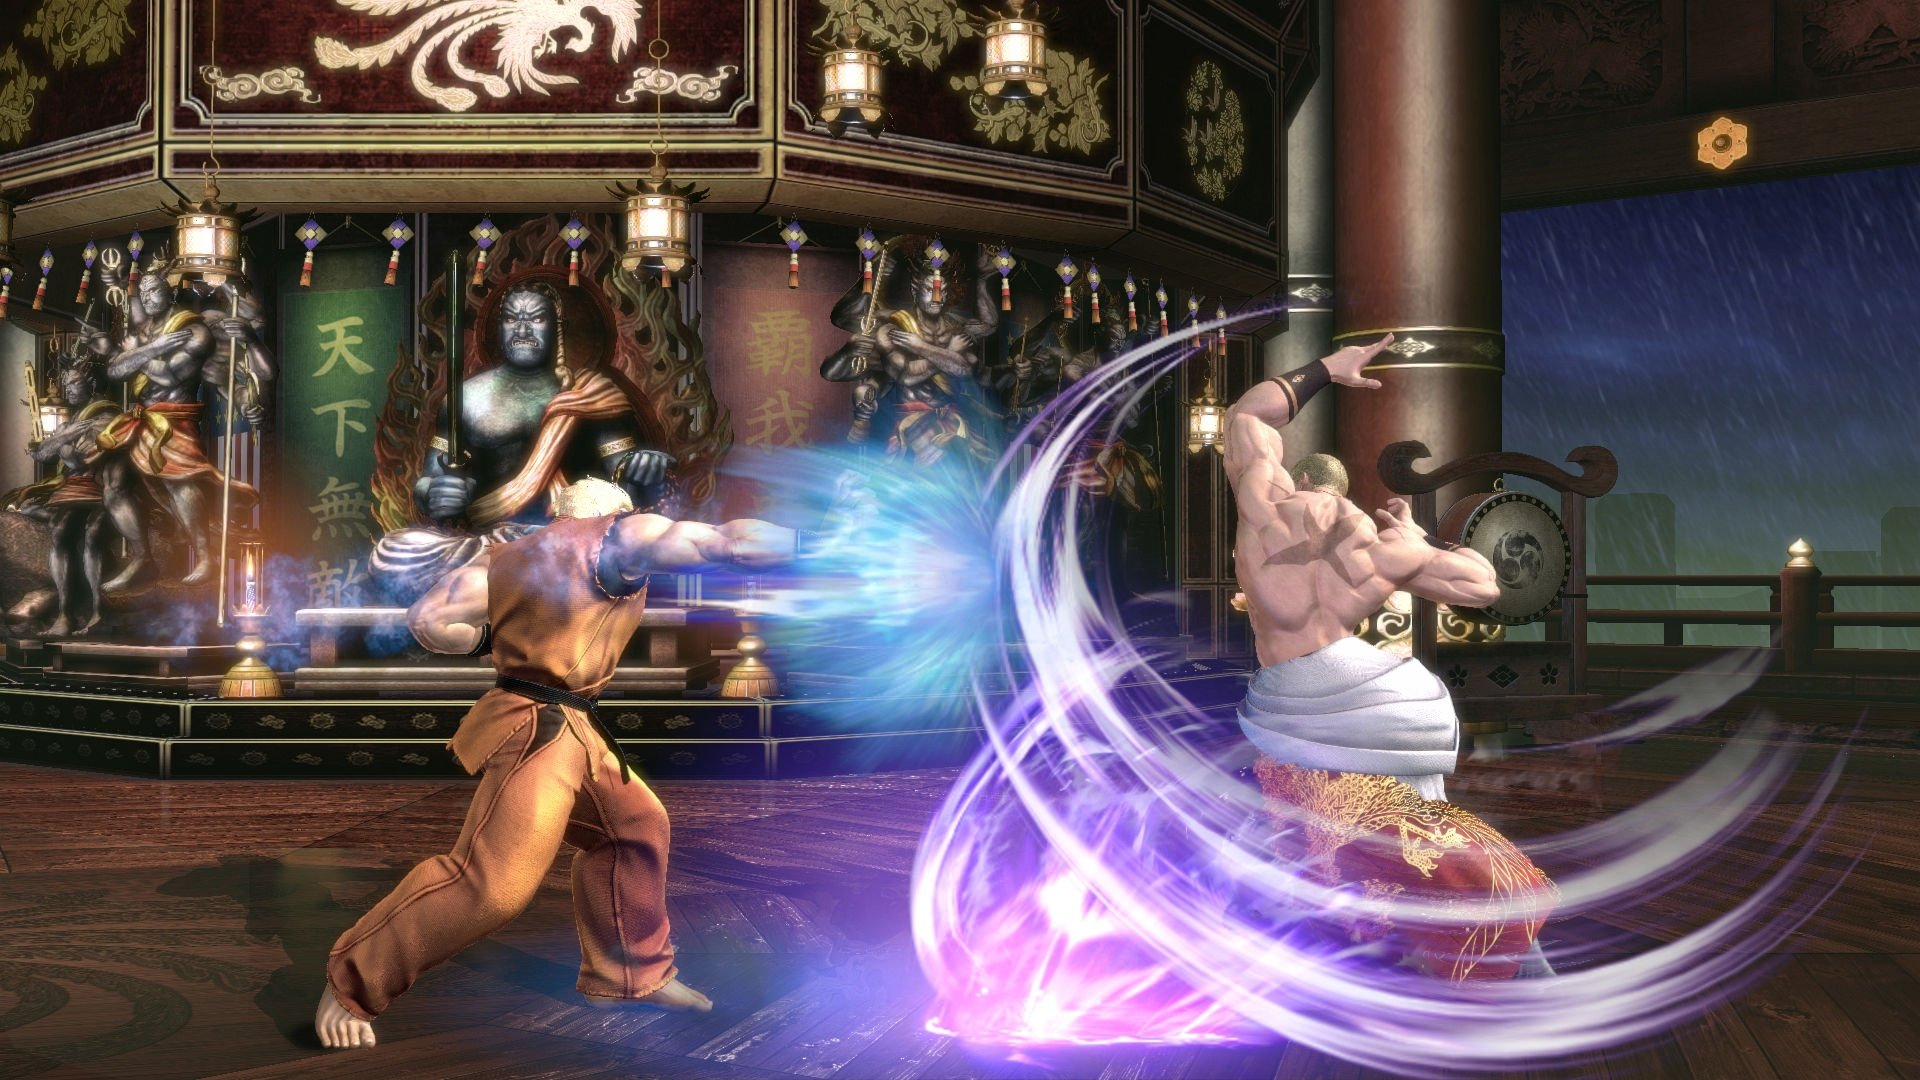 king_of_fighters_xiv-3371181.jpg